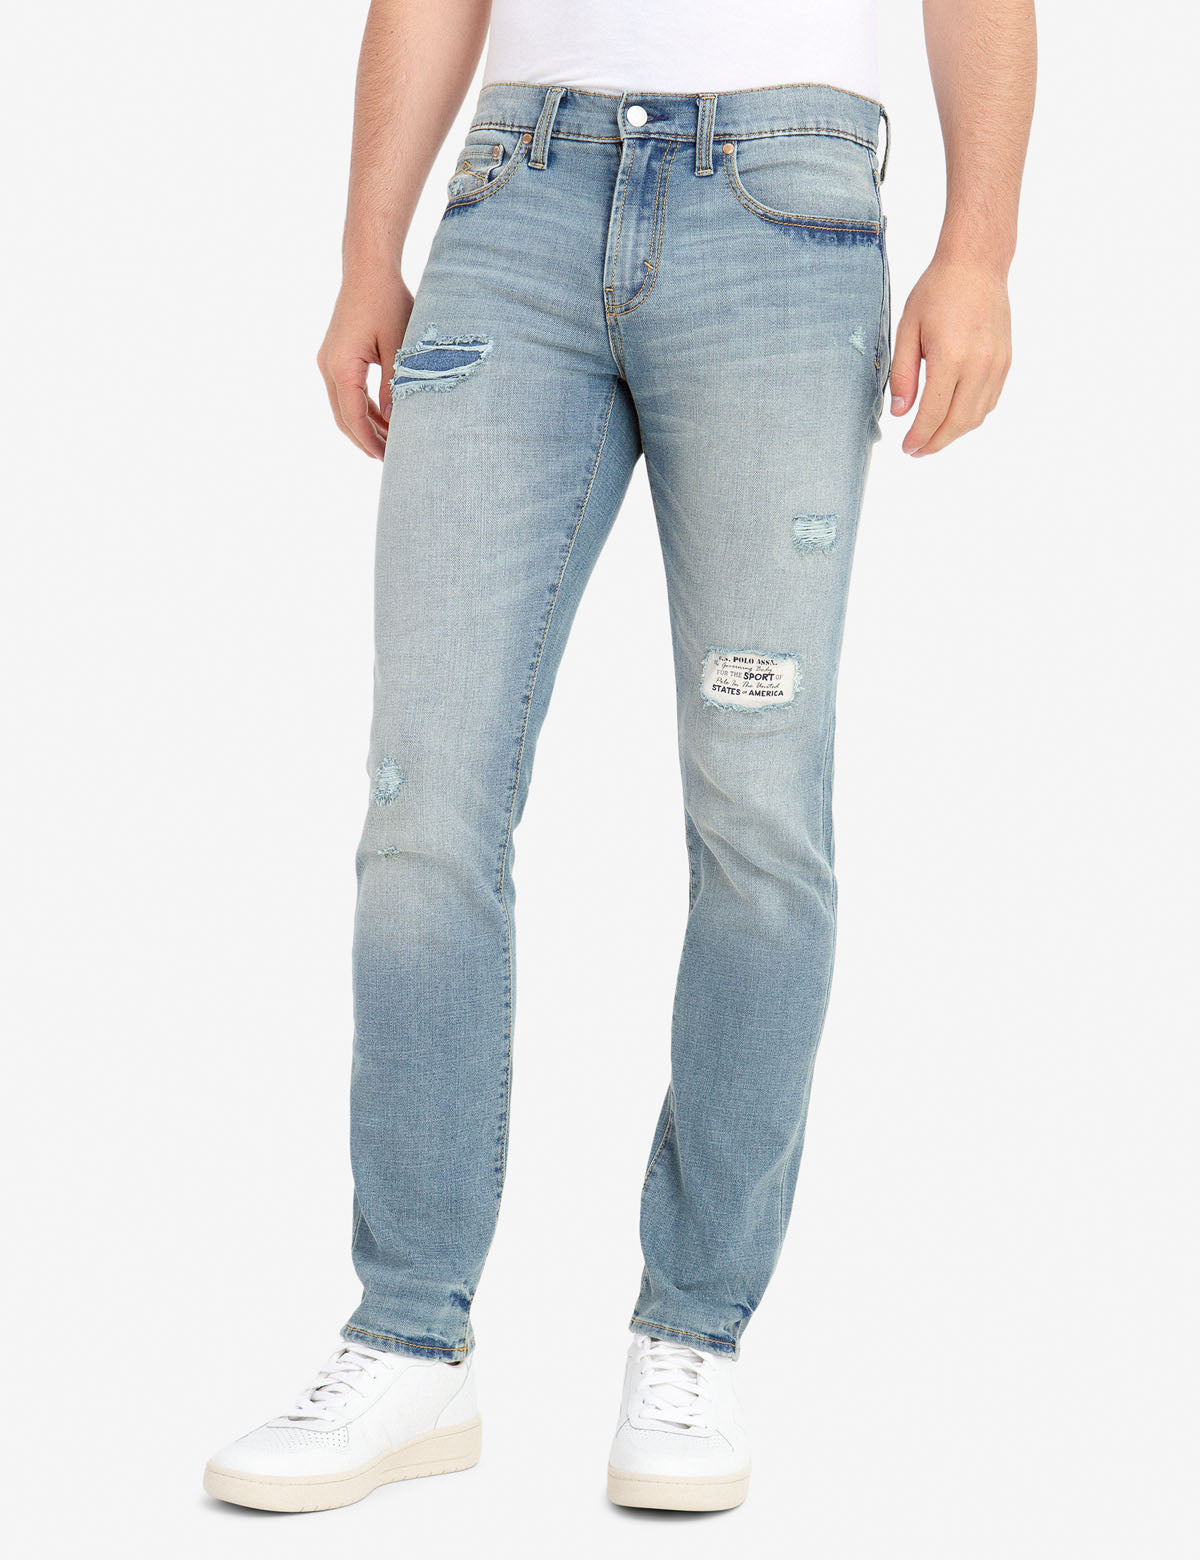 REPREVE® SKINNY FIT DISTRESSED JEANS WITH PATCH REPAIR - U.S. Polo Assn.